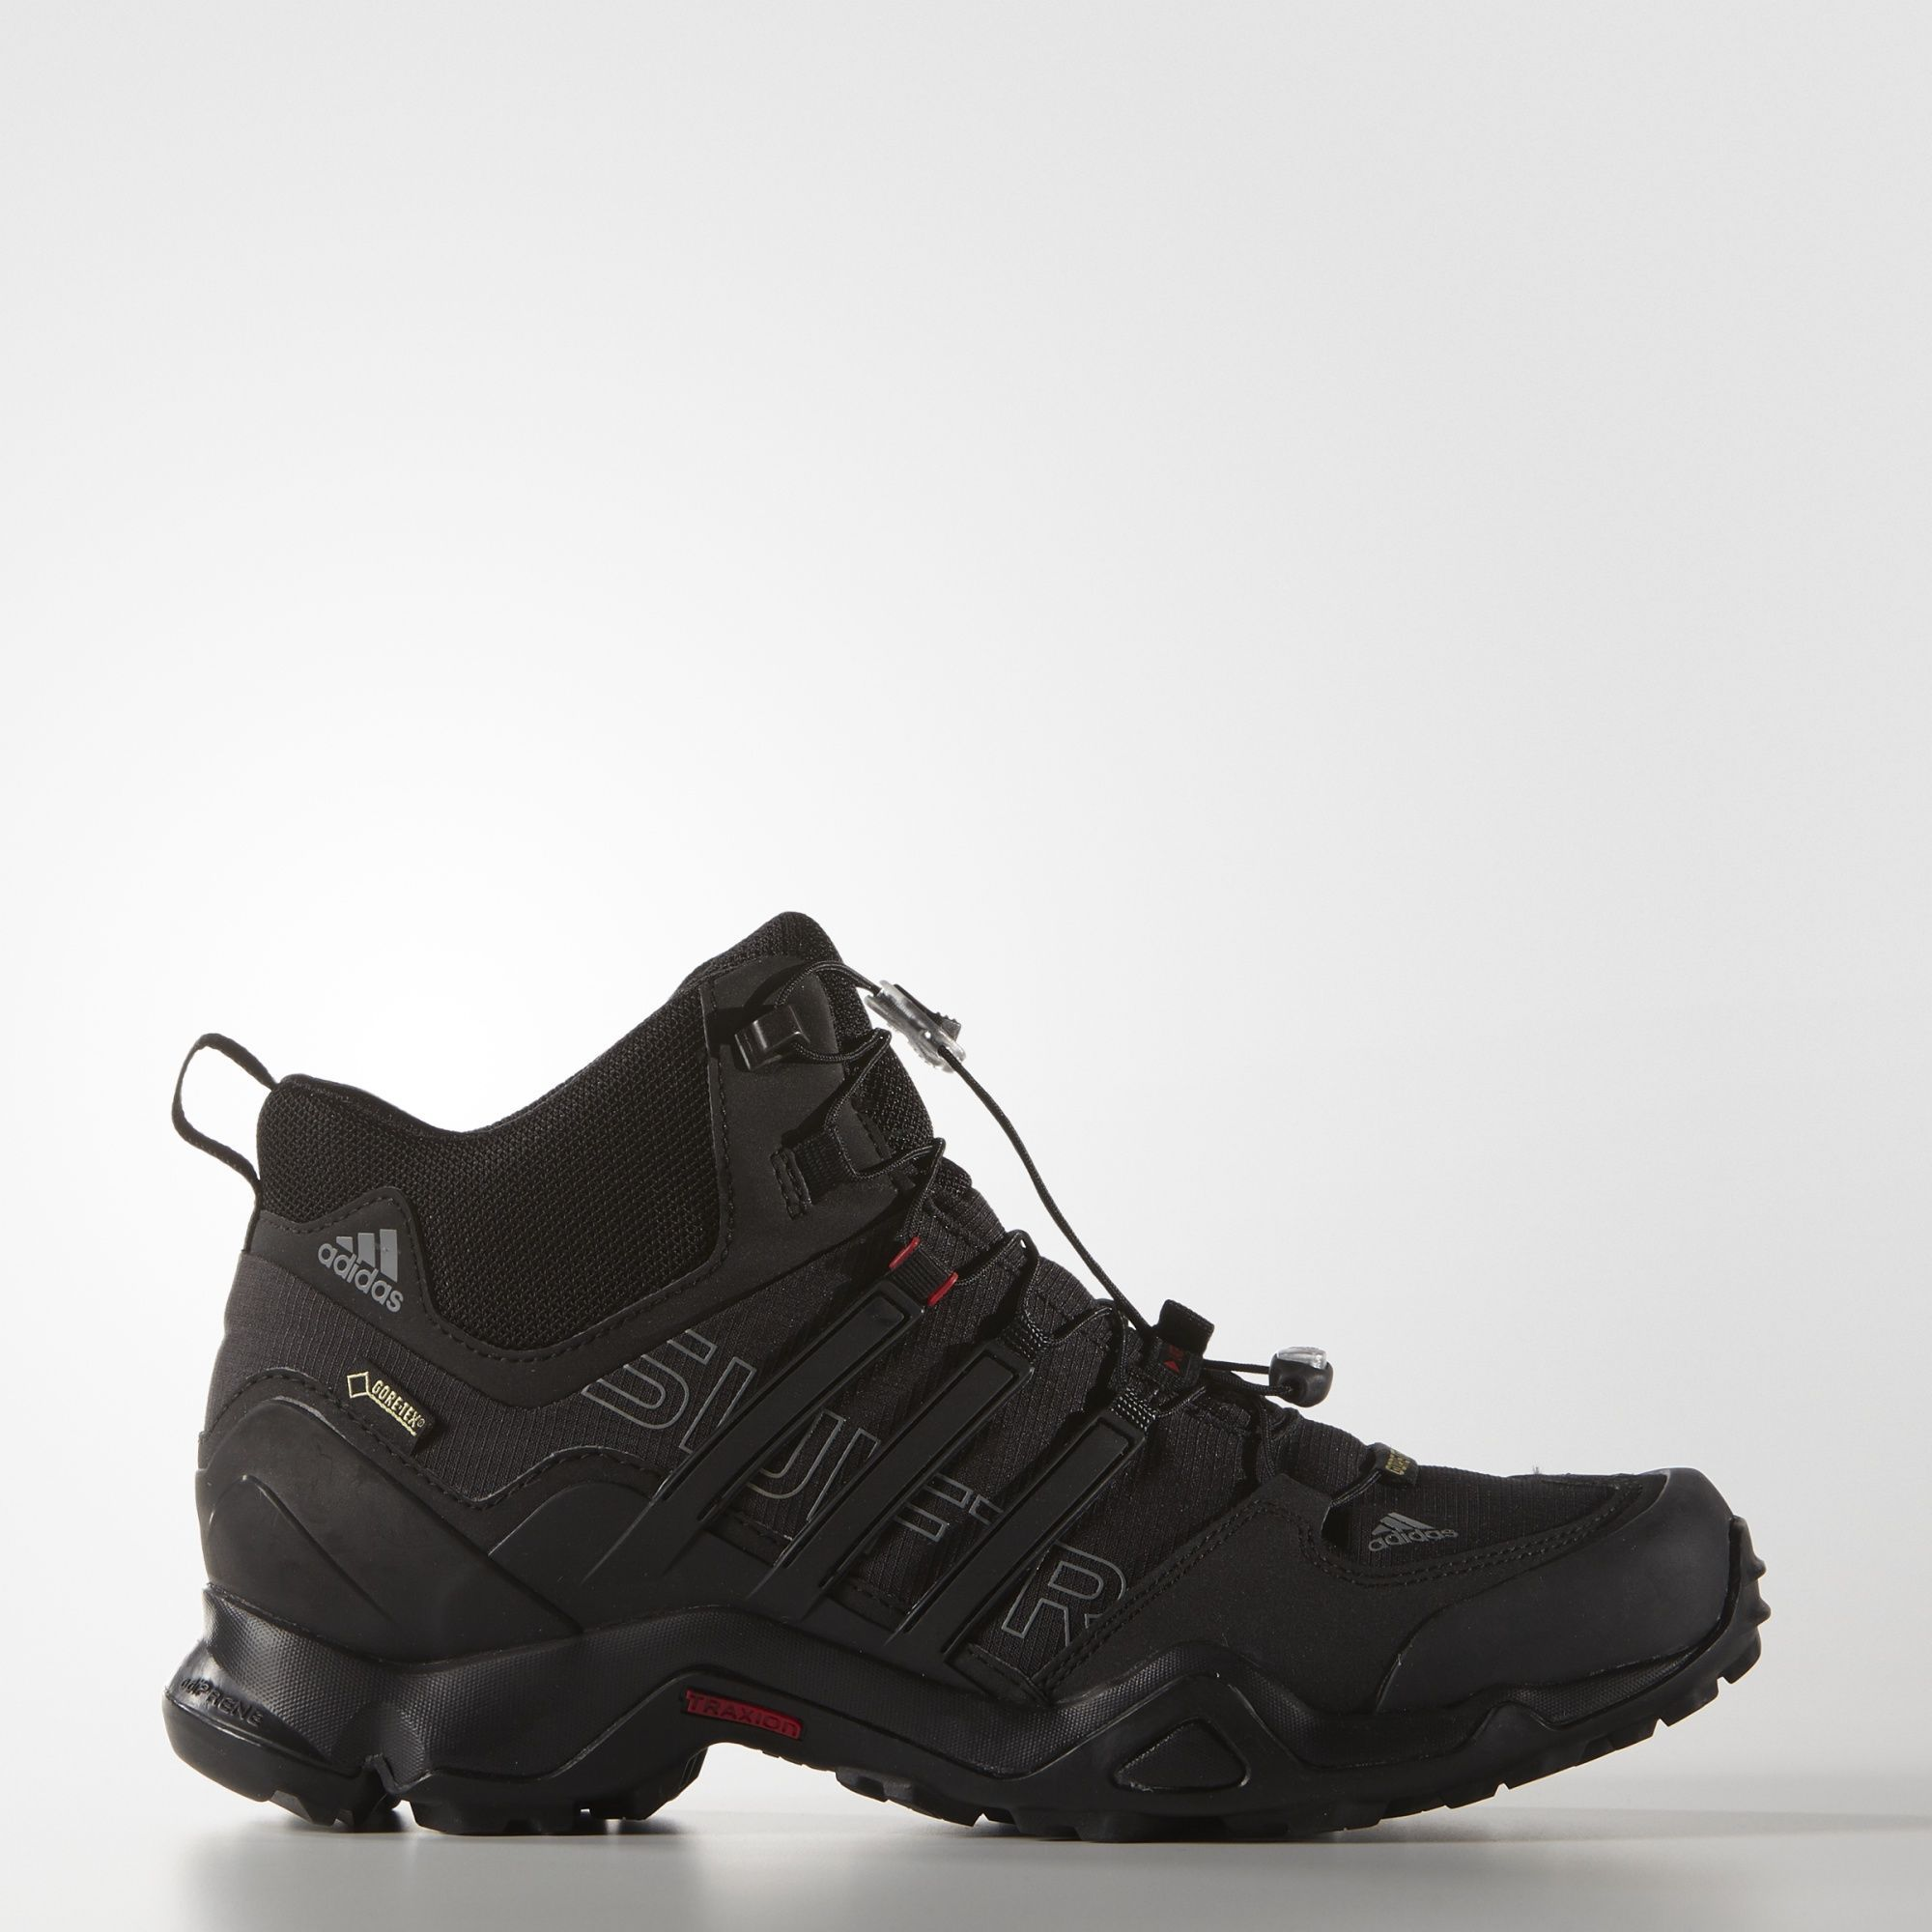 purchase cheap 6edca 4c08f adidas - Terrex Swift R Mid GTX Shoes